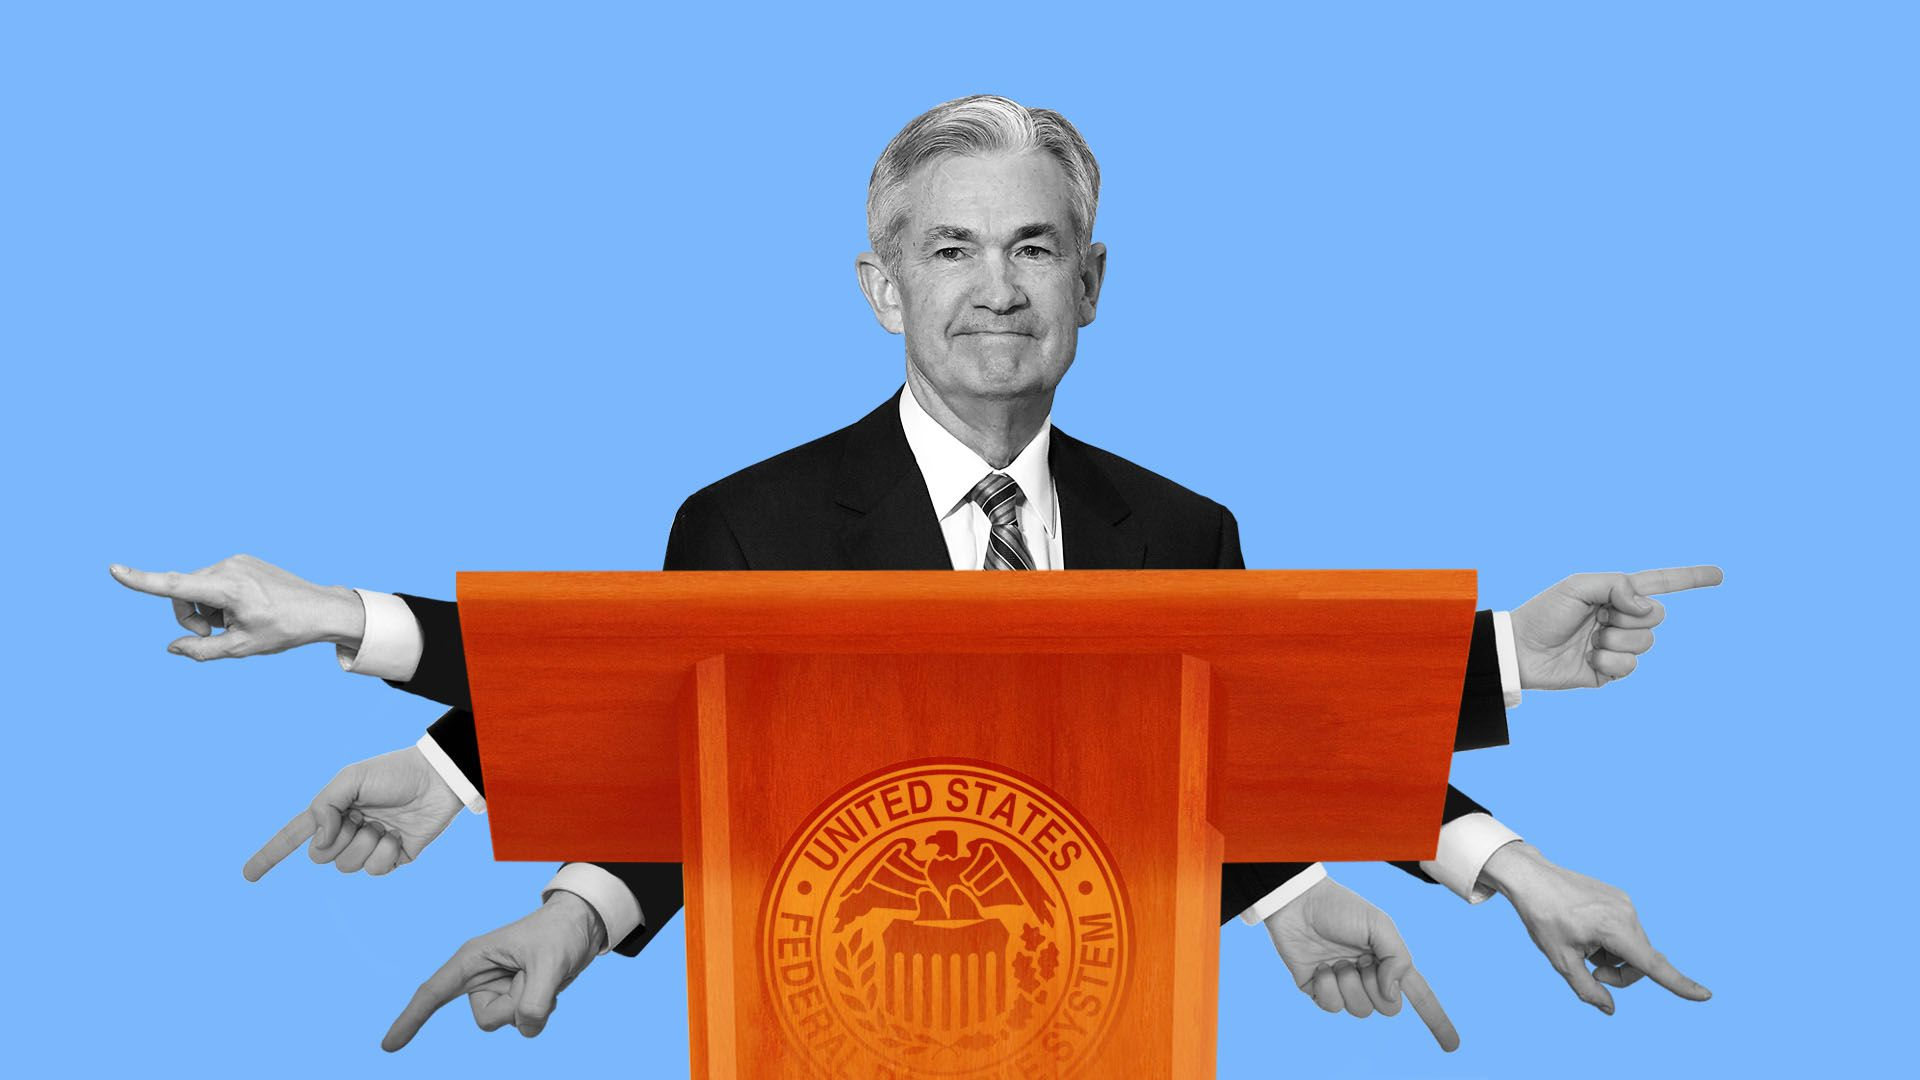 Illustration of Jerome Powell standing behind a podium, with multiple hands pointing in different directions